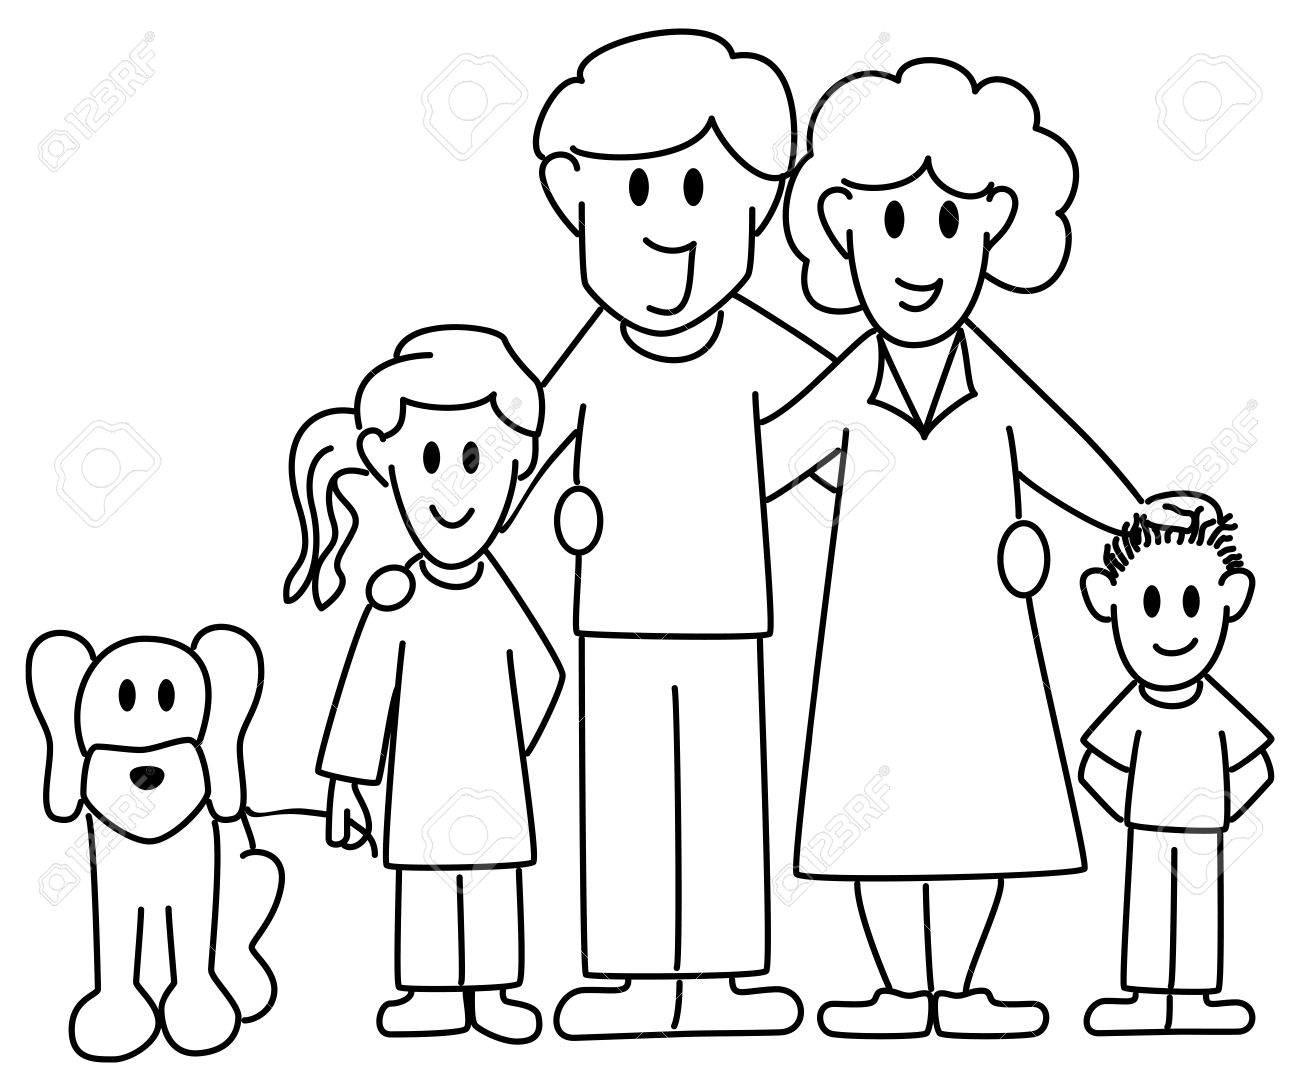 1300x1091 Vector Illustration Of A Family Consisting Of Father, Mother